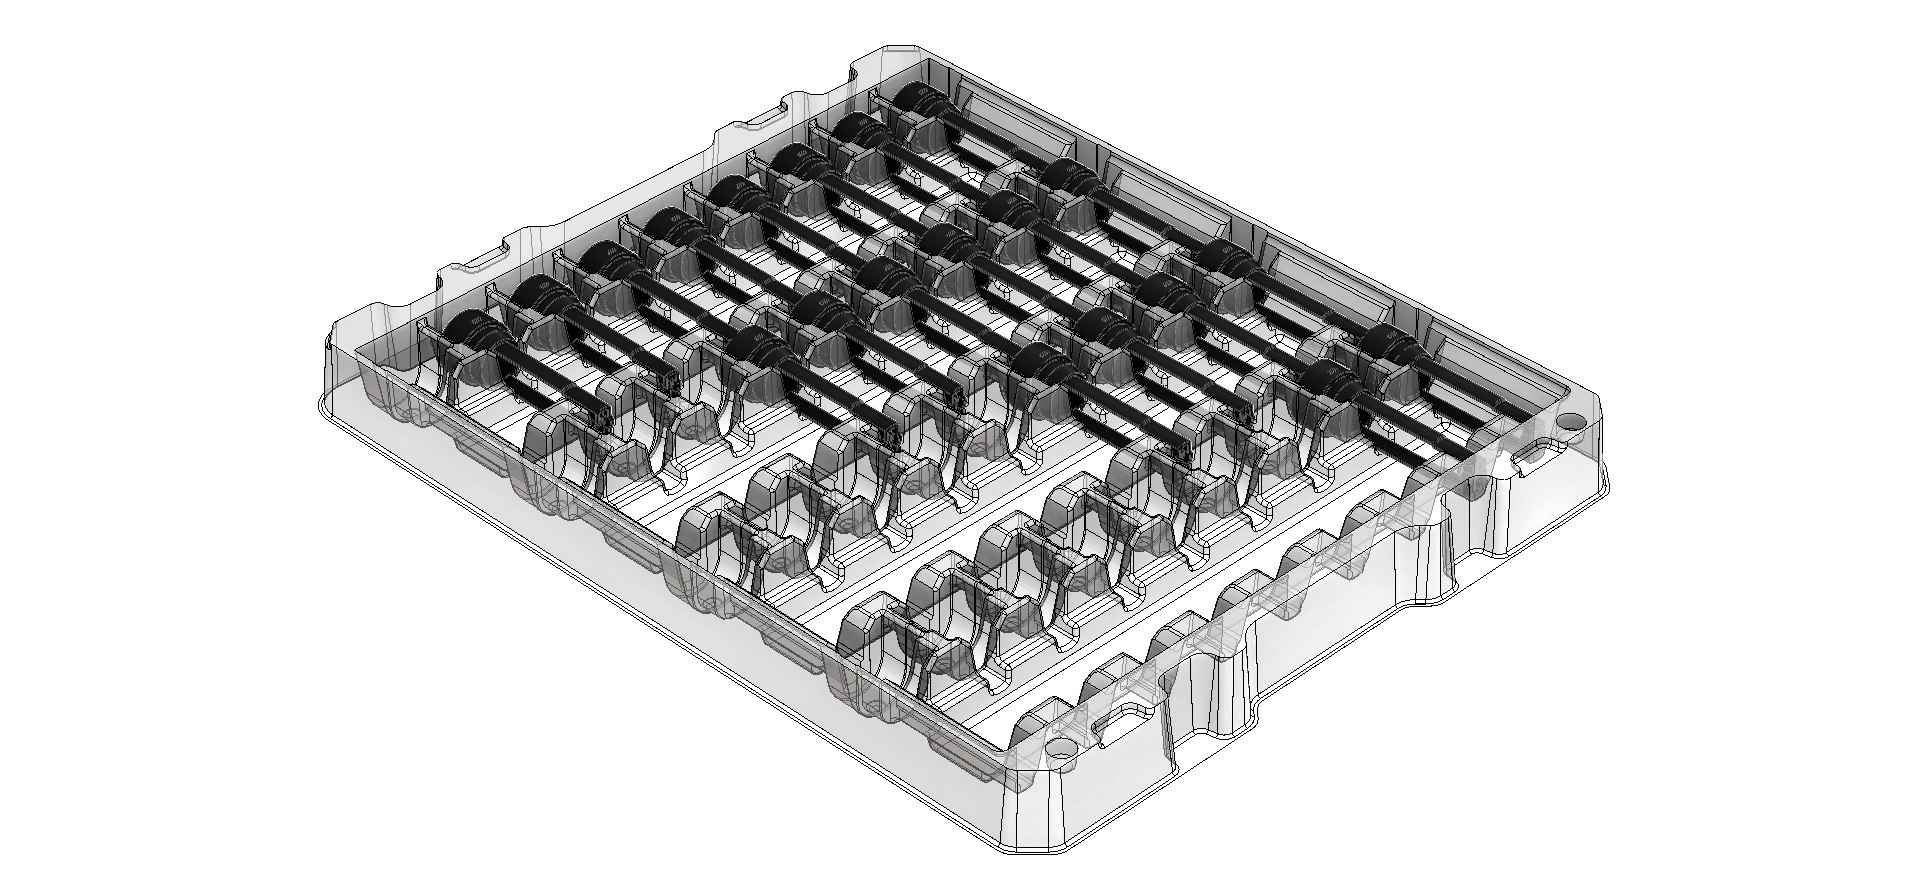 3d rendering of a transit tray